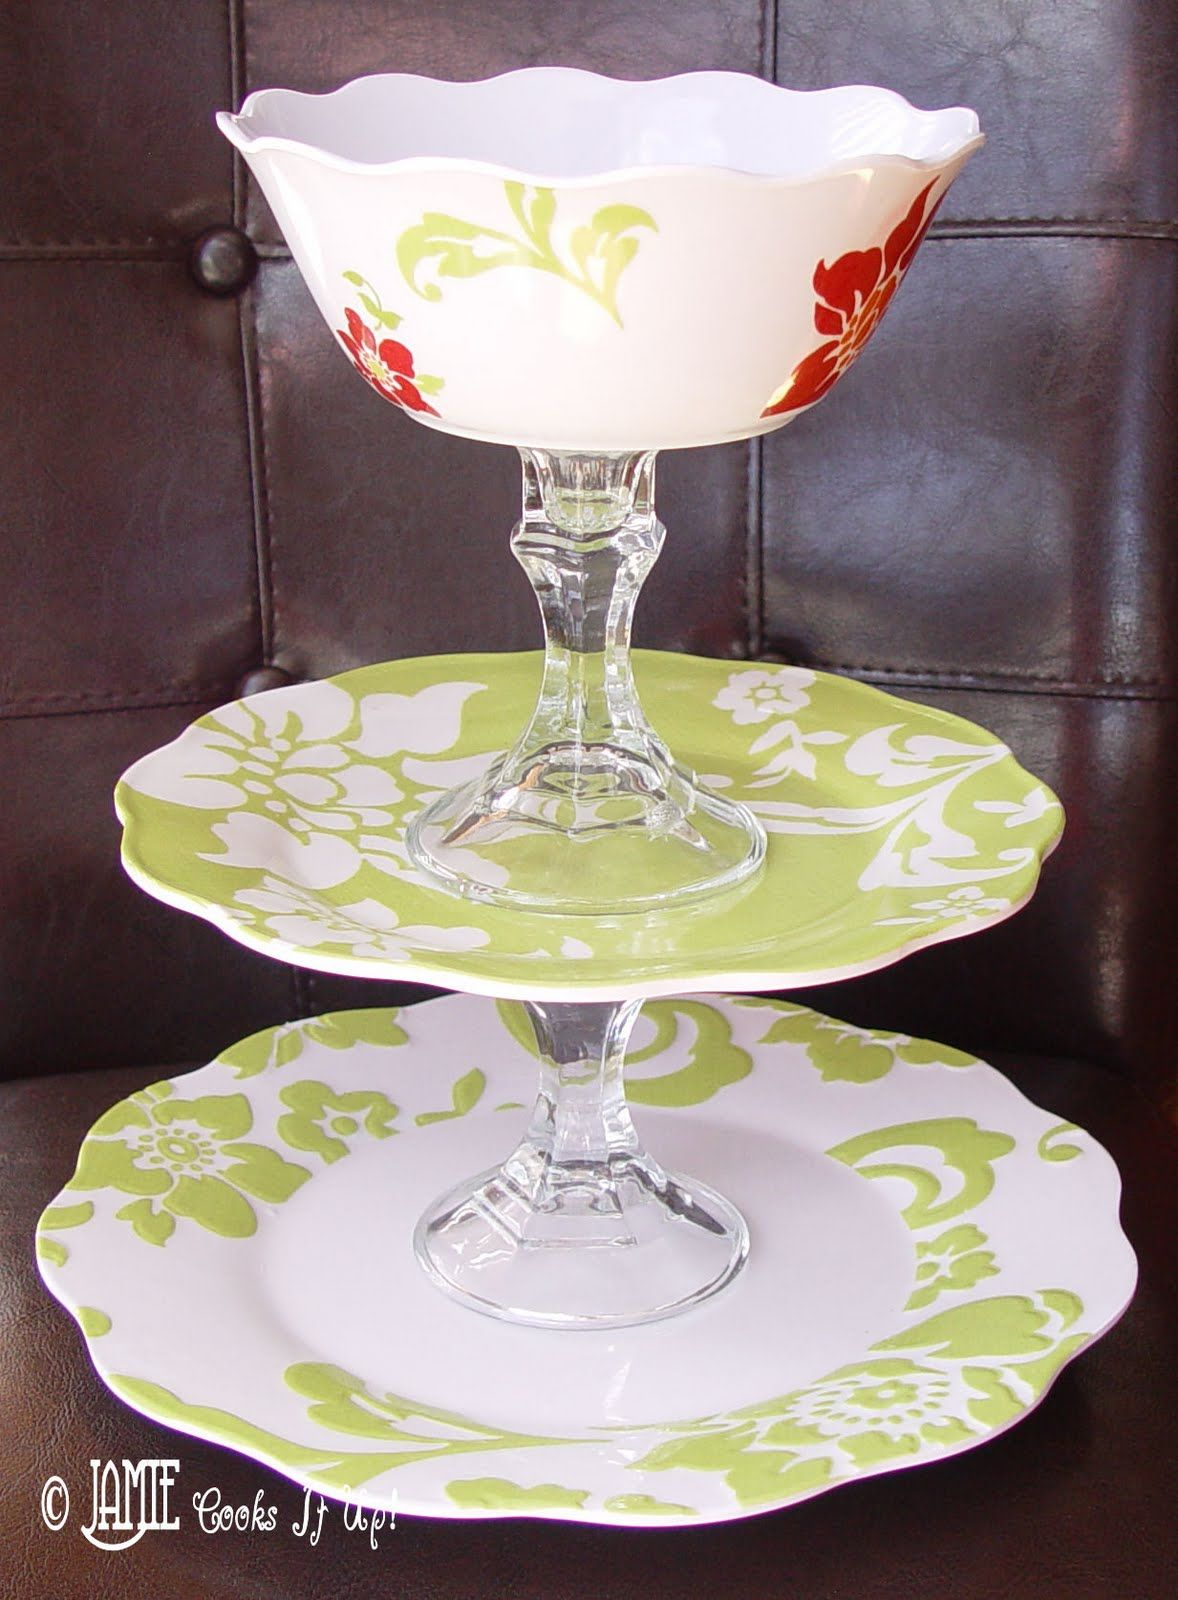 How To Make Your Own Tiered Serving Platter For Cheap Diy Cake Stand Tiered Serving Platters Serving Platters